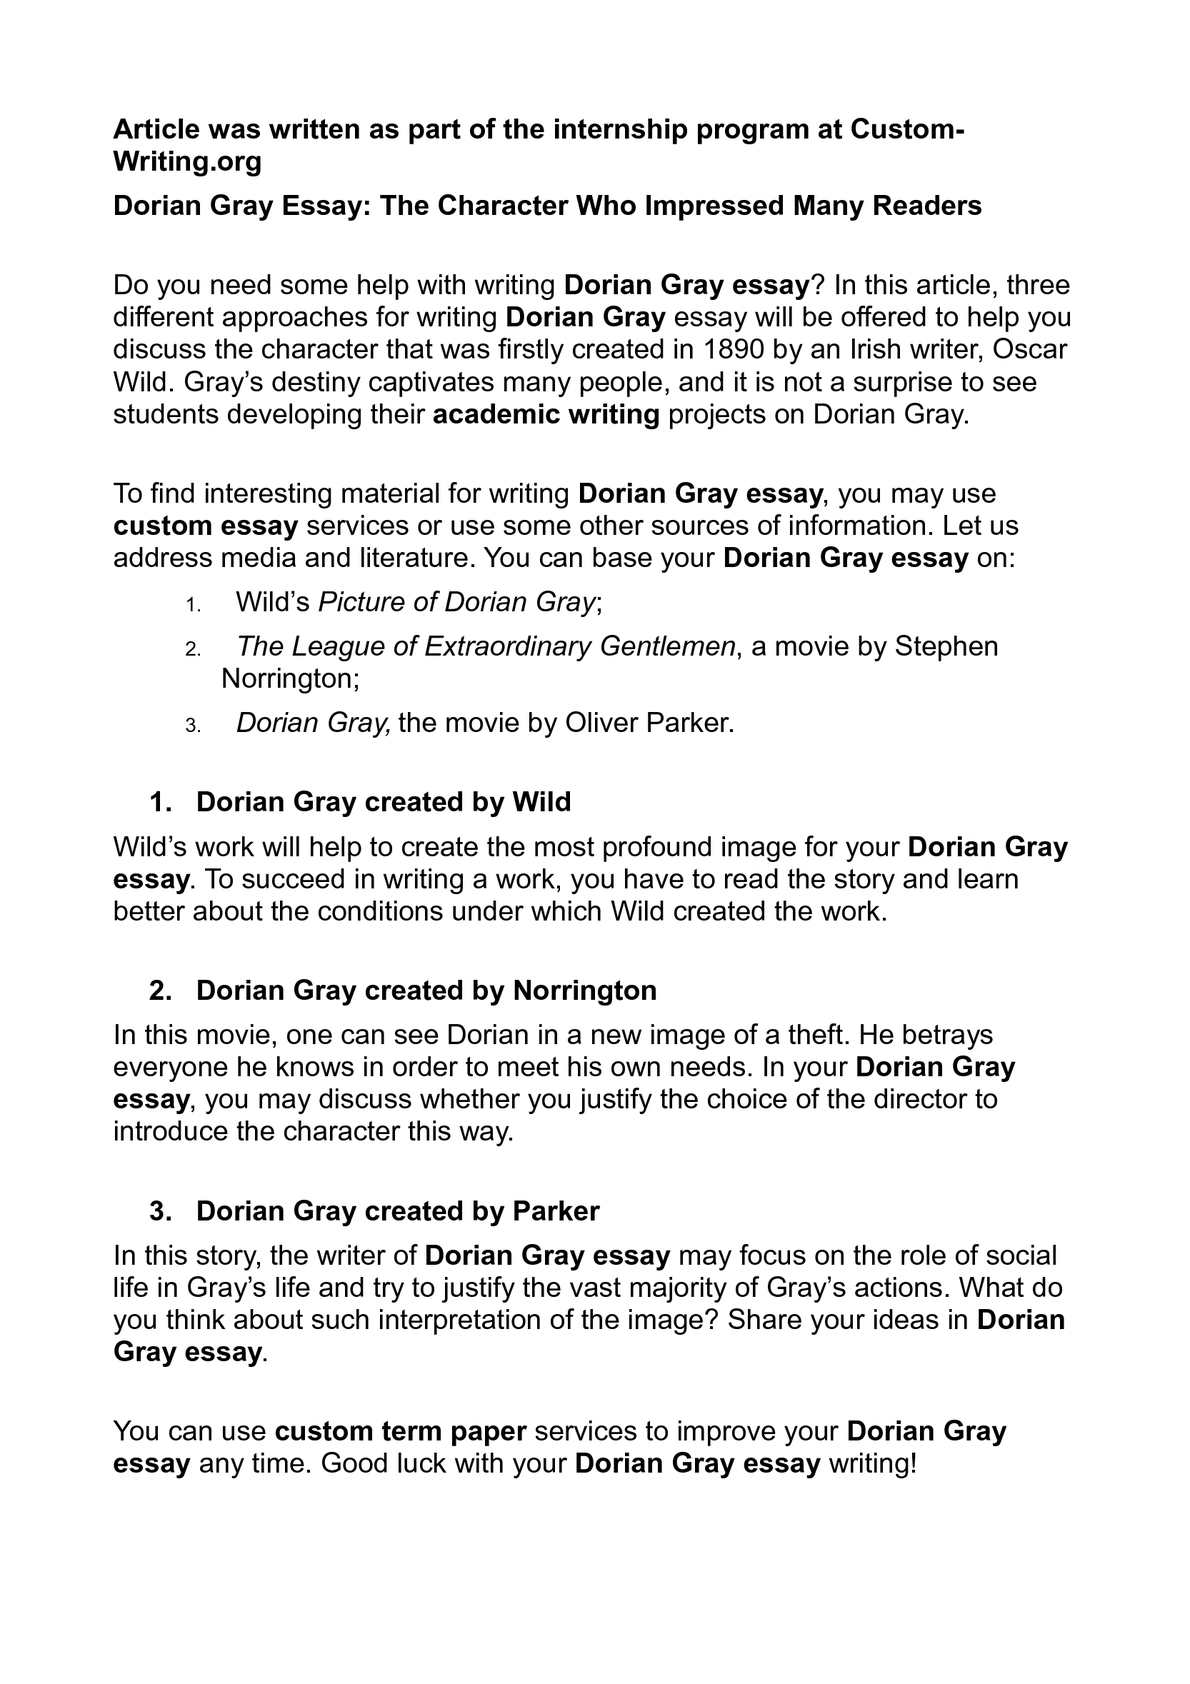 Calamo  Dorian Gray Essay The Character Who Impressed Many Readers  Do My Economics Assignment also Essay Paper Help  Business Plan Writer Las Vegas